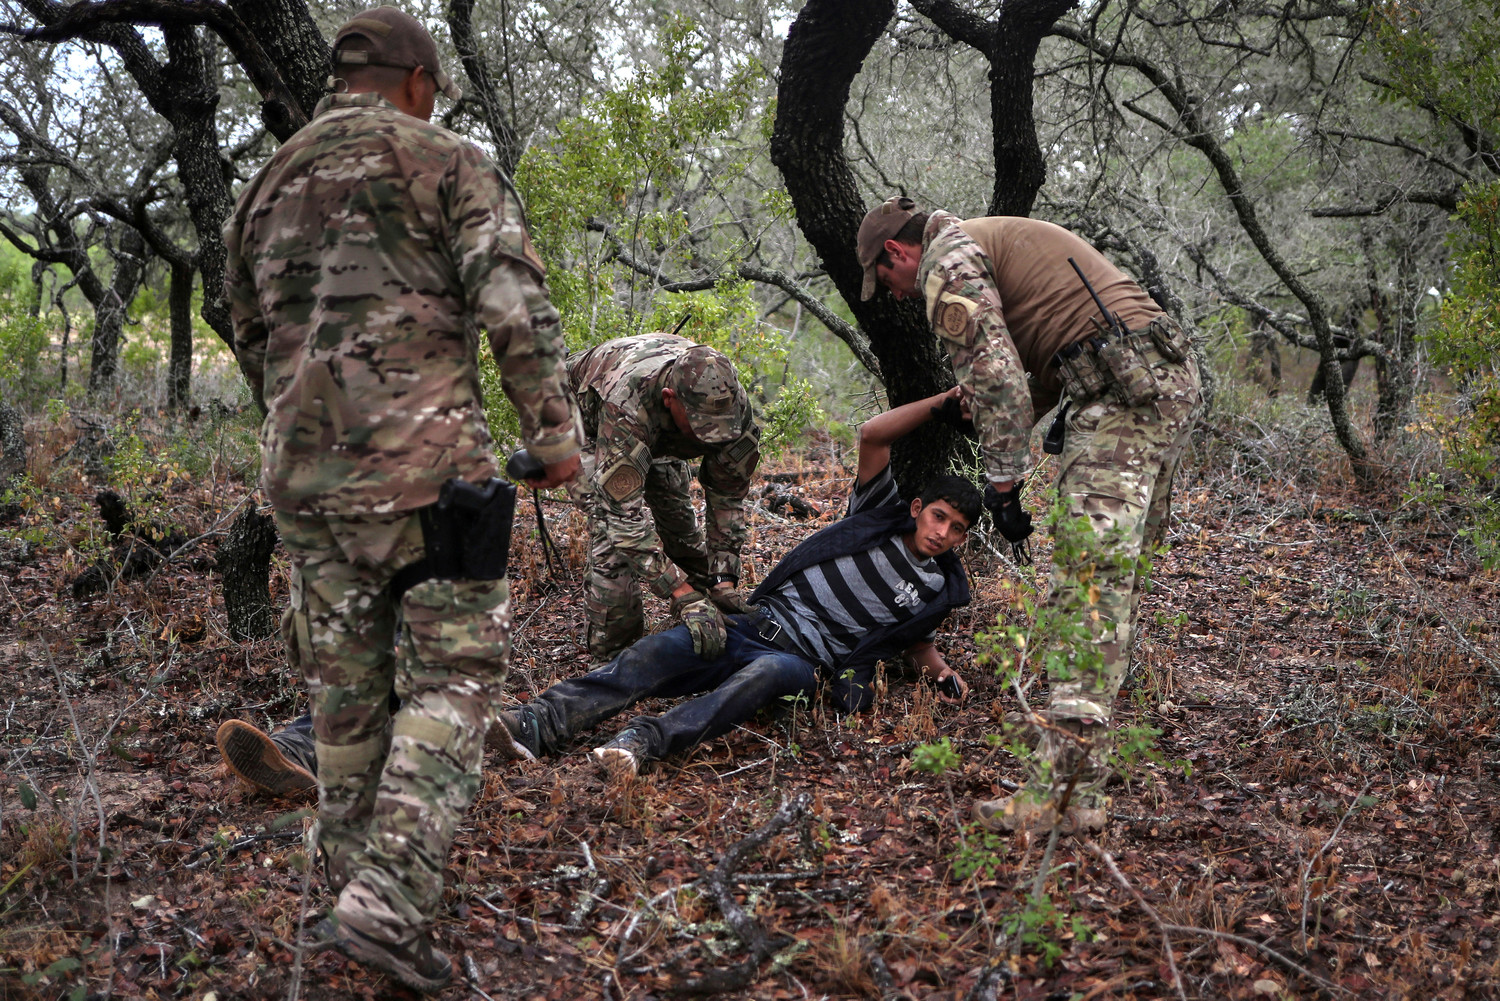 Members of the Border Patrol Search, Trauma, and Rescue Unit near Falfurrias, Texas, apprehend an injured immigrant from Honduras June 19. Pope Francis told Reuters he stands with the U.S. bishops in their condemnation of the Trump administration's immigration policy has led to children being held in government shelters while their parents are detained in federal prison.